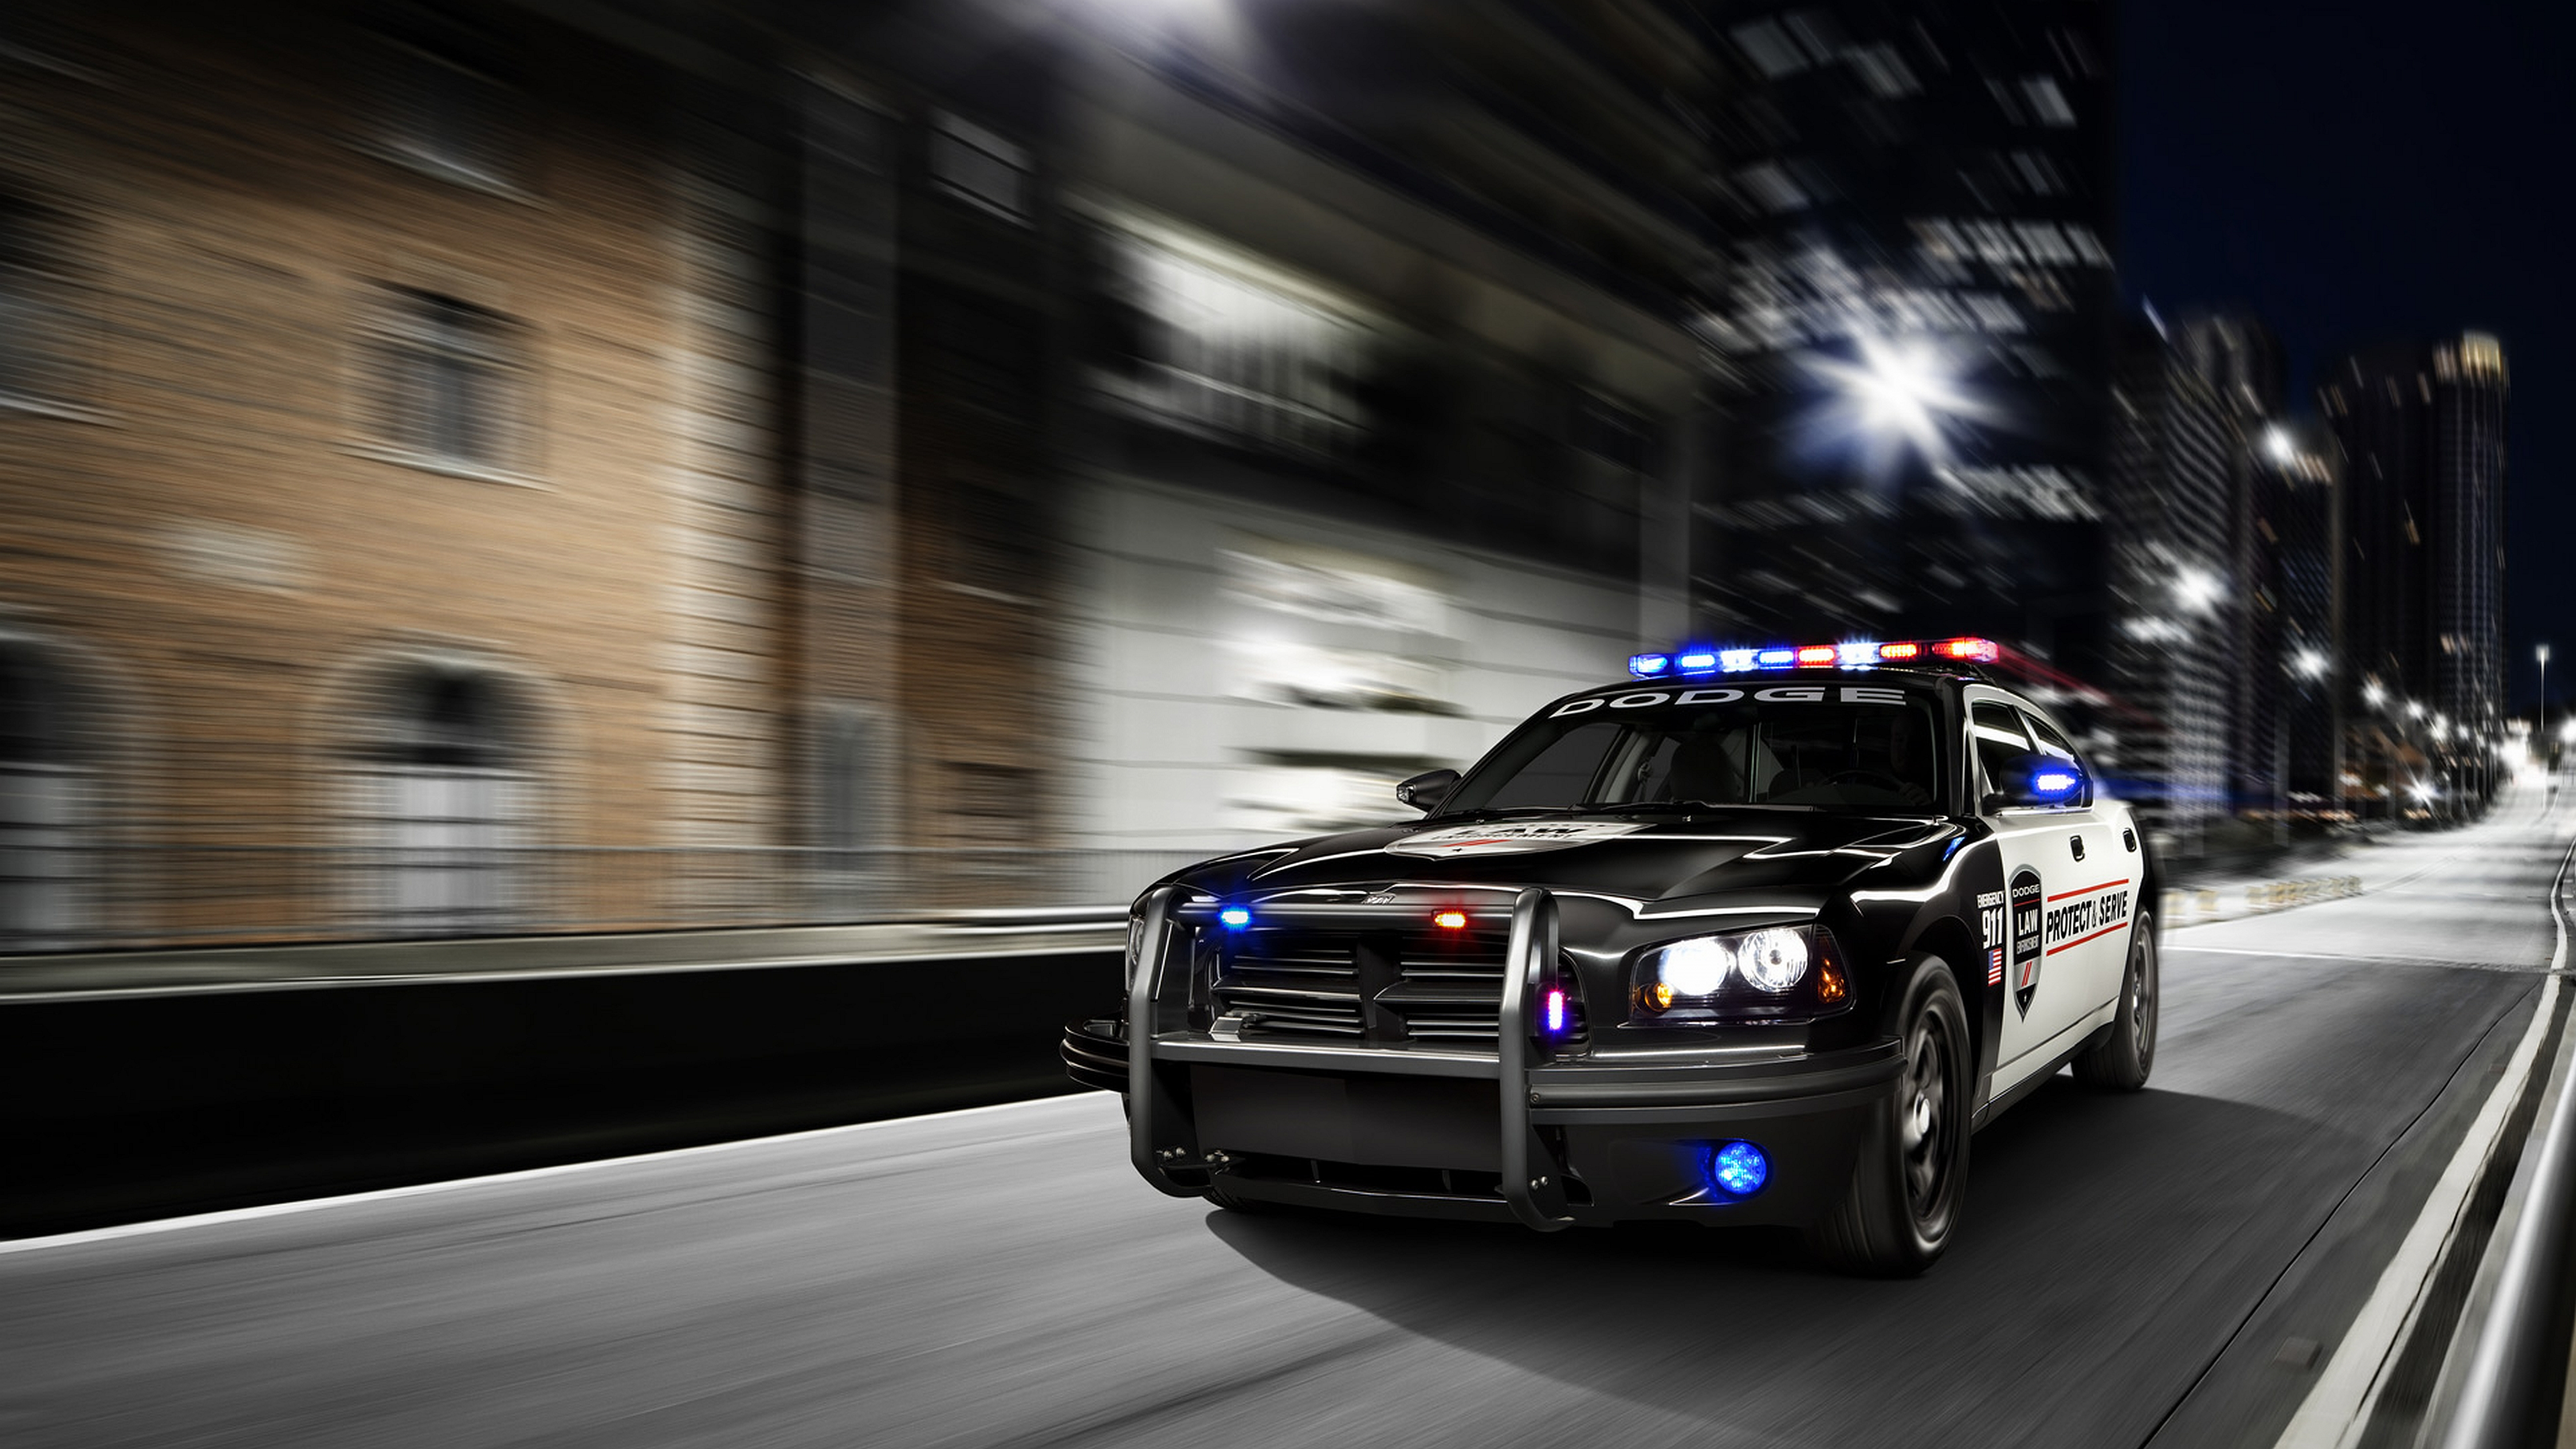 HD Wallpaper | Background Image ID:160234. 3840x2160 Vehicles Police. TorinoGT